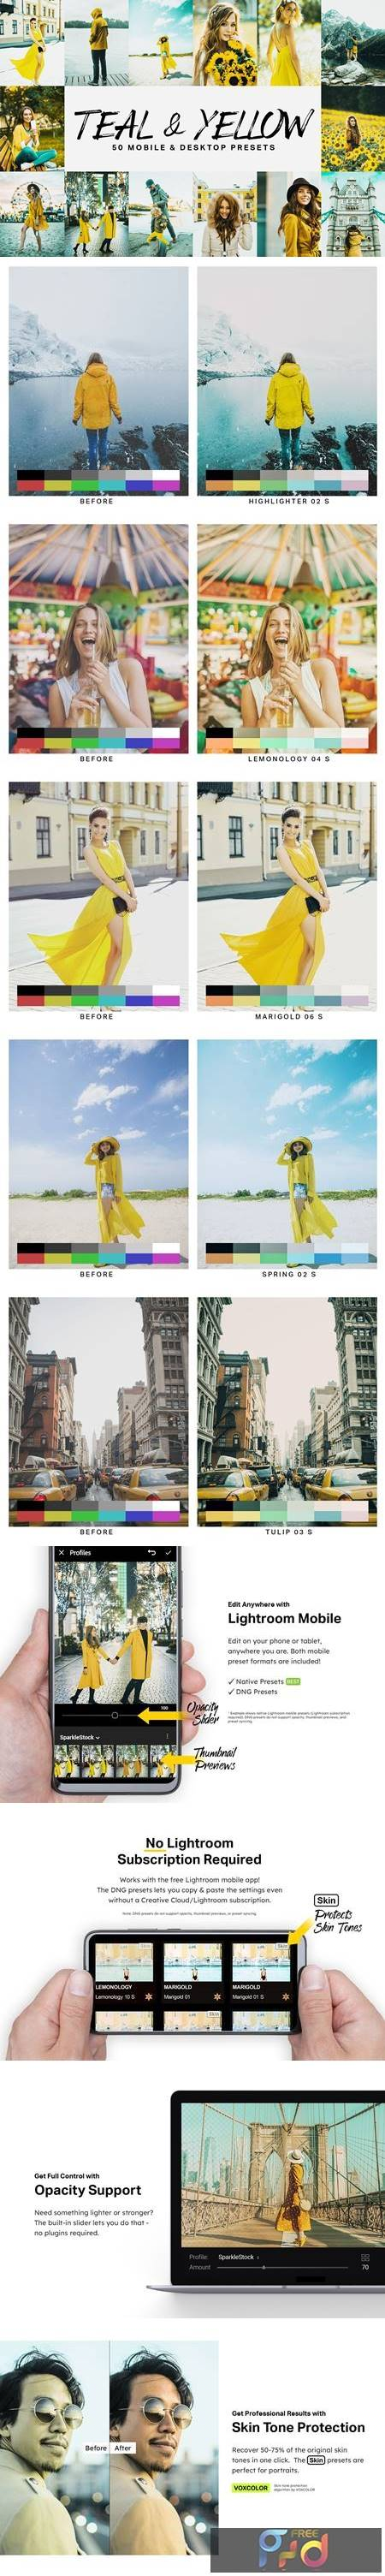 50 Teal & Yellow Lightroom Presets and LUTs 4747346 1